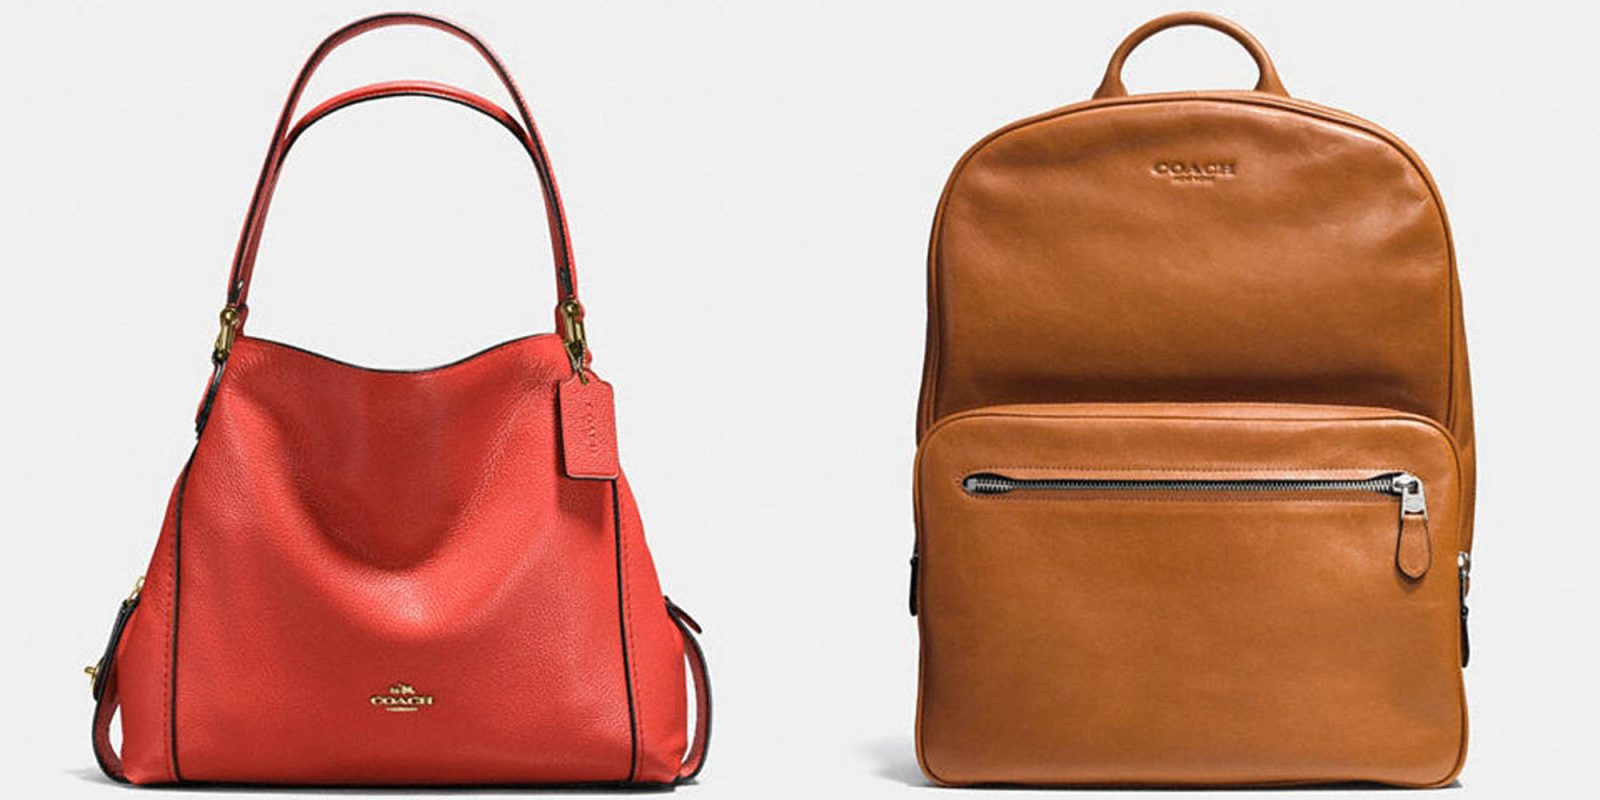 9791ebf95f Coach 50% off Summer Sale is here, save on purses, accessories and more!